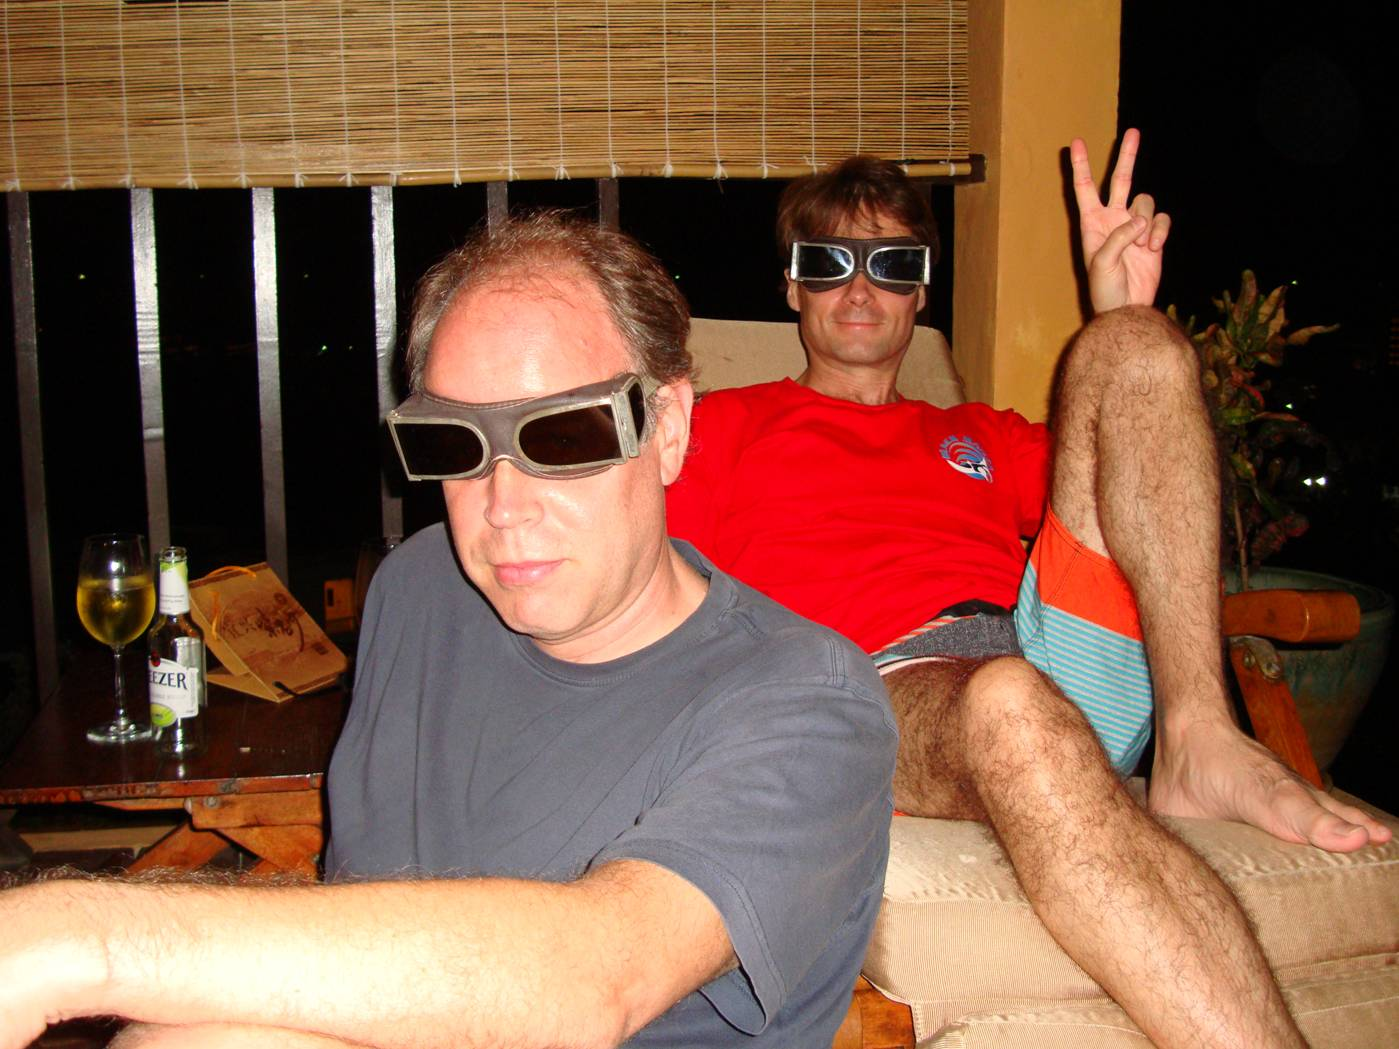 Picture:  Doug and Ken in Japanese aviator sunglasses circa WWII.  Phuket, Thailand.